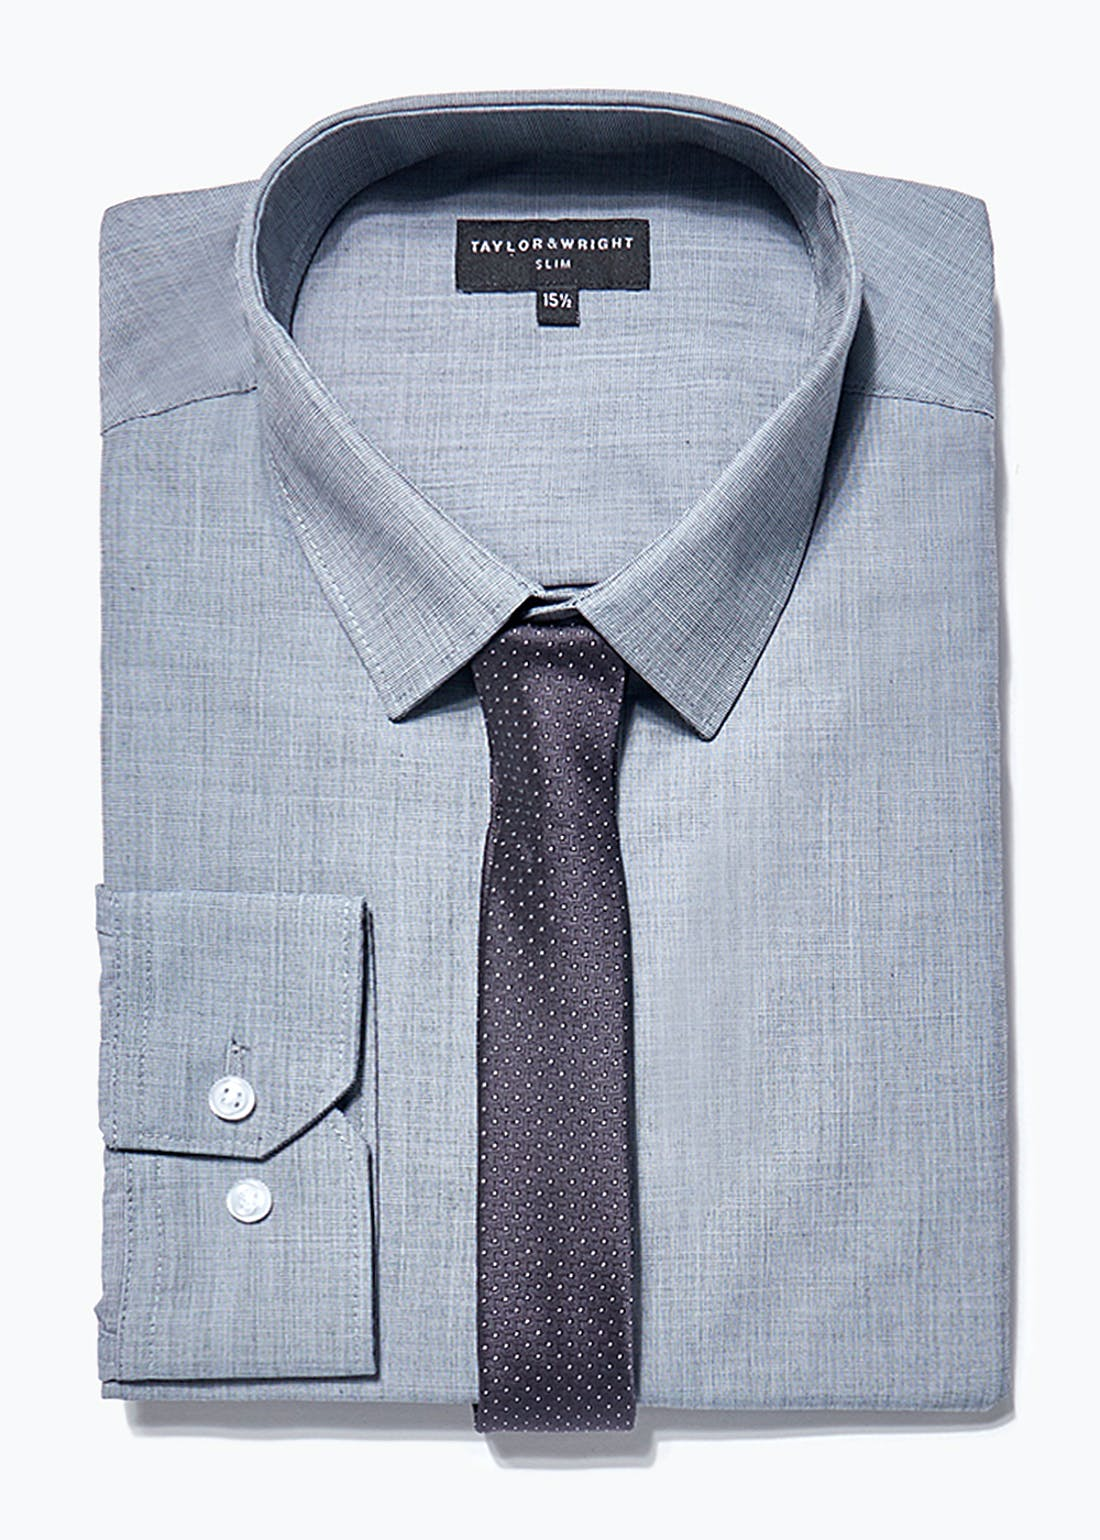 Taylor & Wright Long Sleeve Slim Fit Shirt & Tie